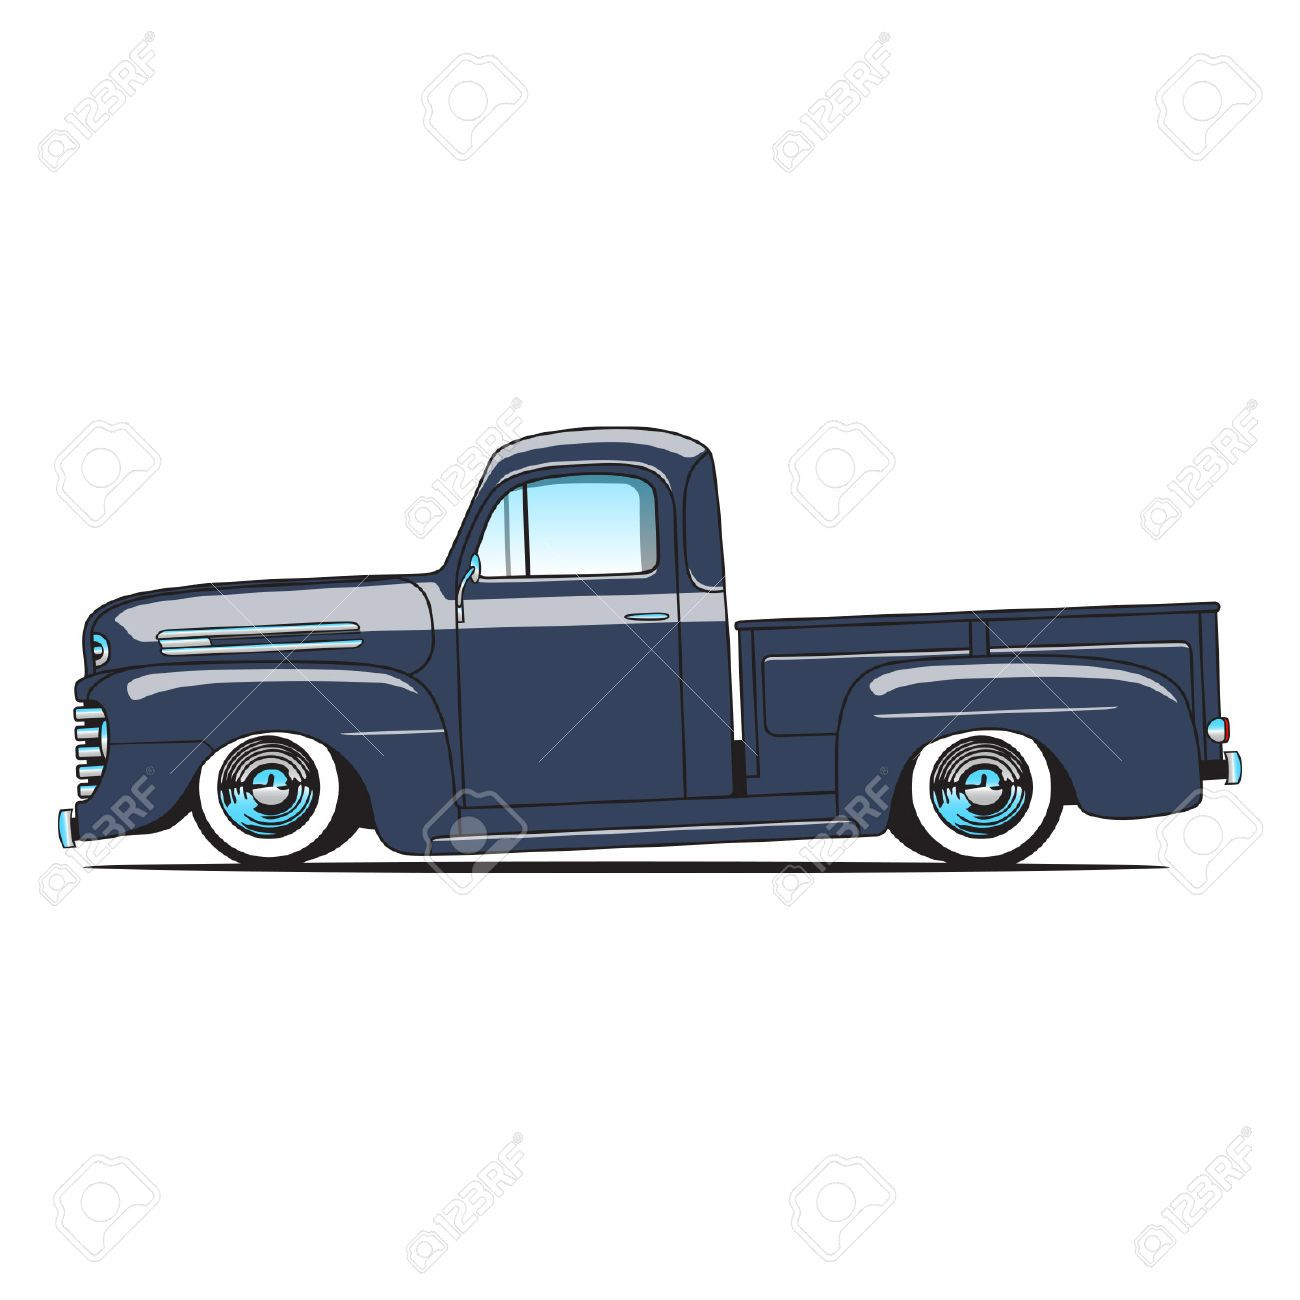 54 ford pickup clipart graphic transparent library 1948-50 Ford F1 Pickup Truck Royalty Free Cliparts, Vectors, And ... graphic transparent library